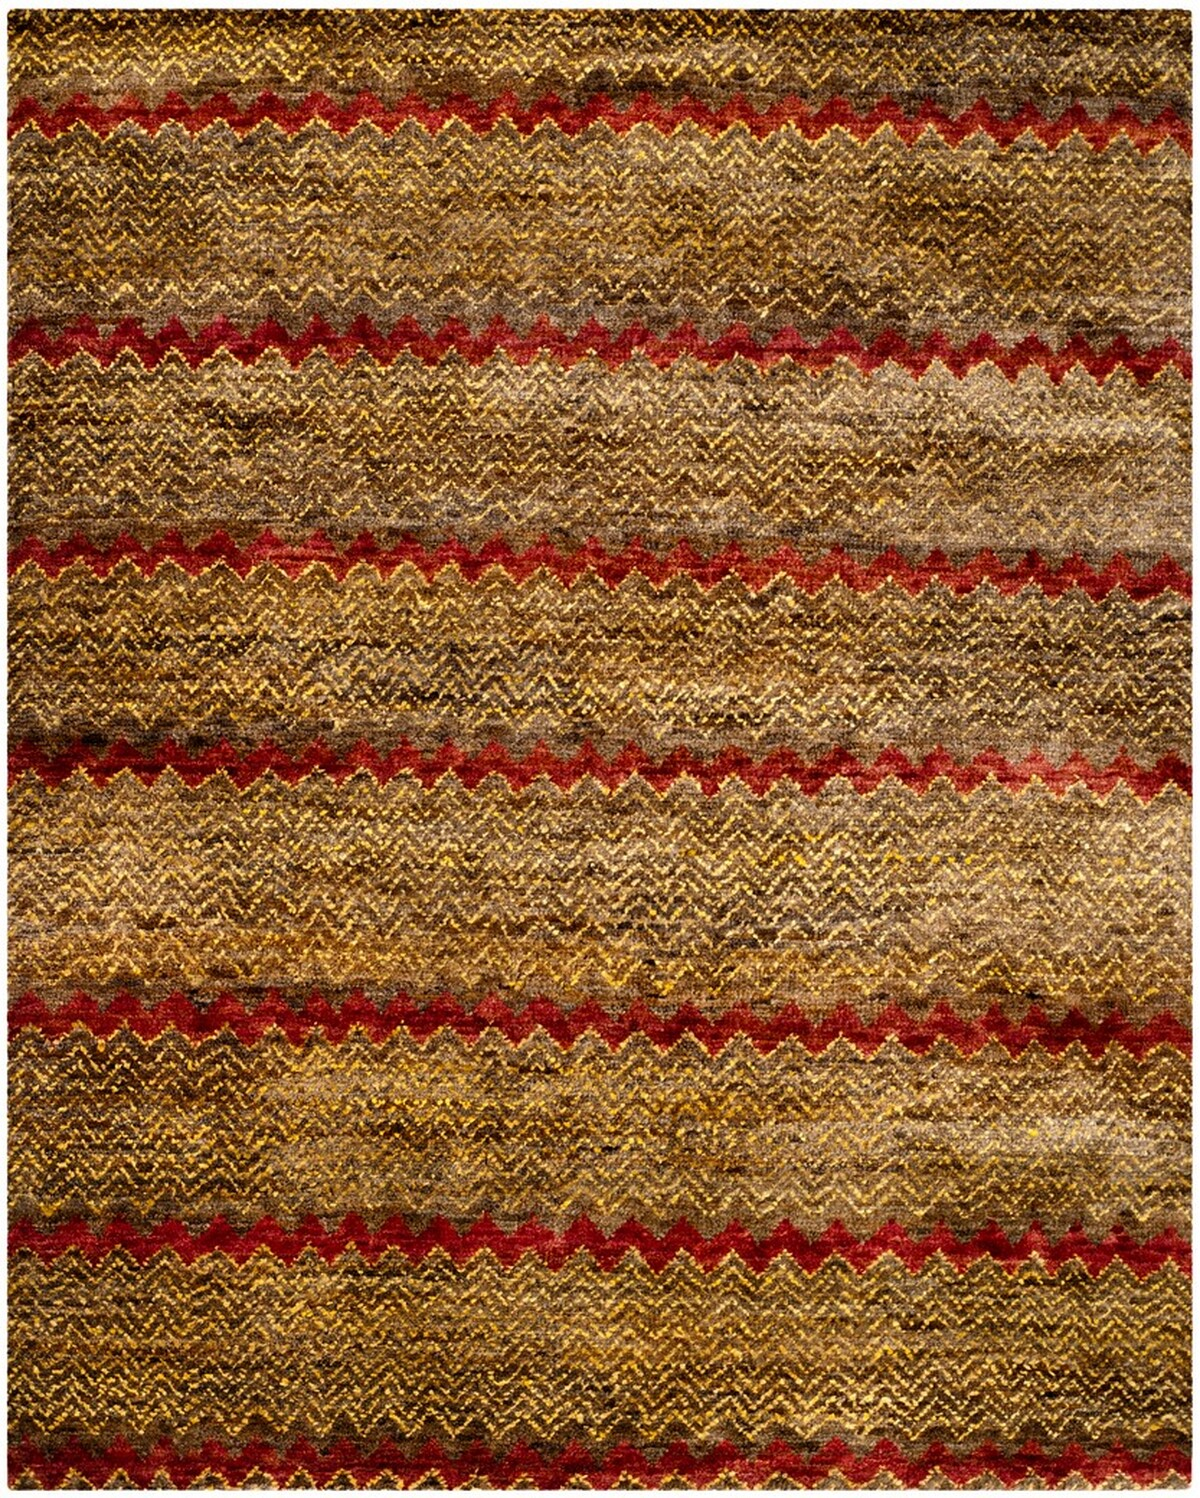 Rug Boh616a Bohemian Area Rugs By Safavieh